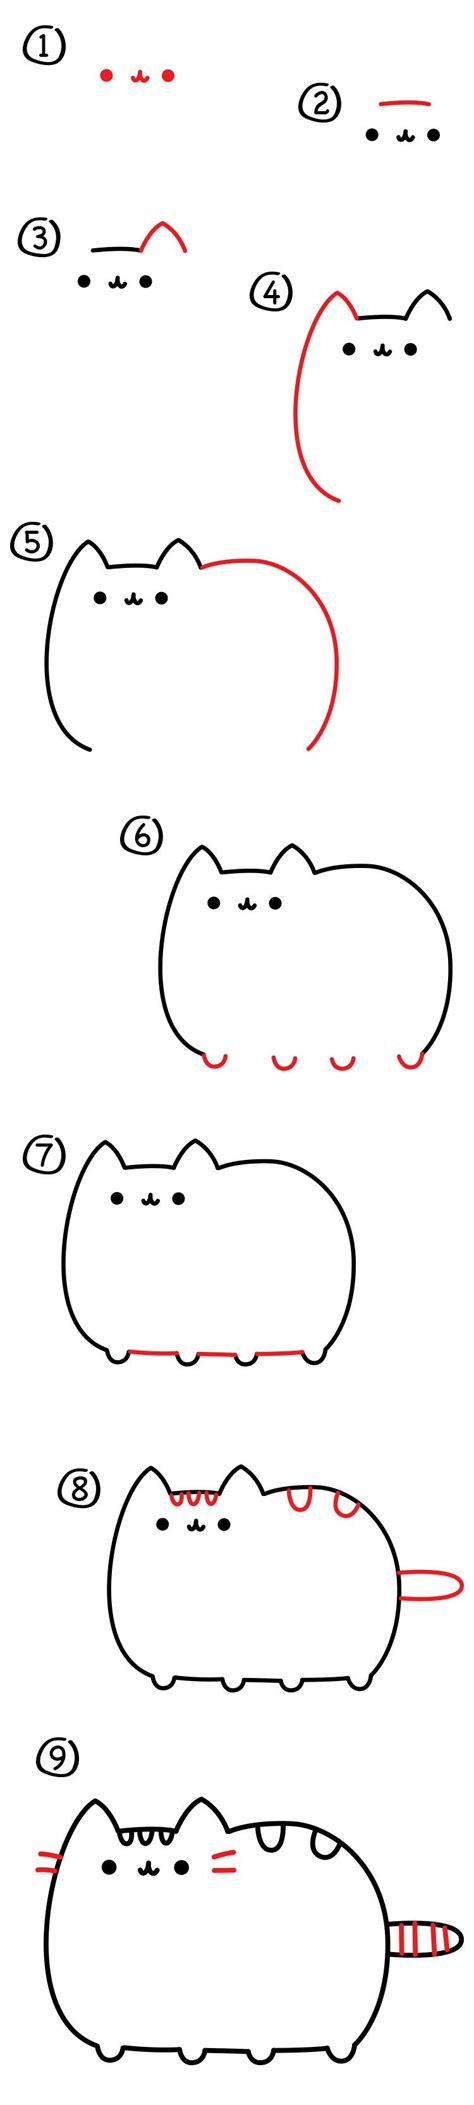 how to make easy doodle how to draw the pusheen cat for hub pusheen